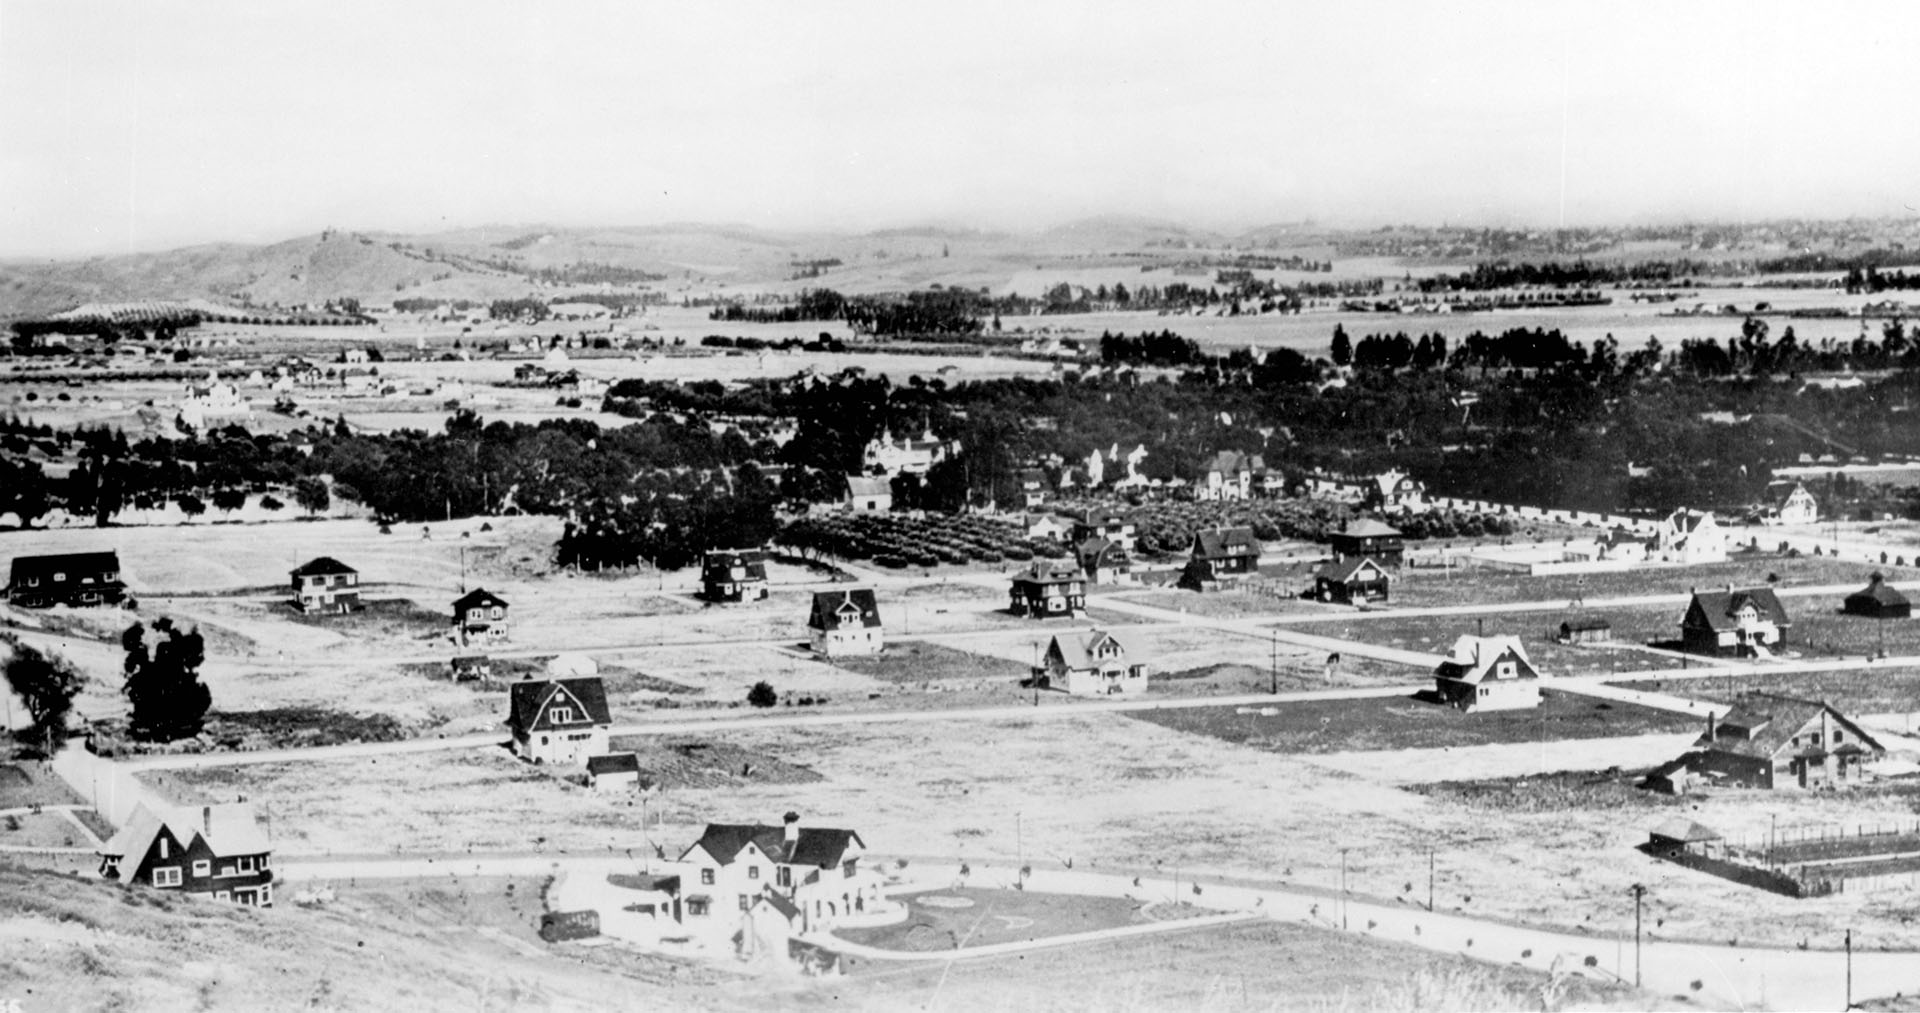 Hollywood in 1906